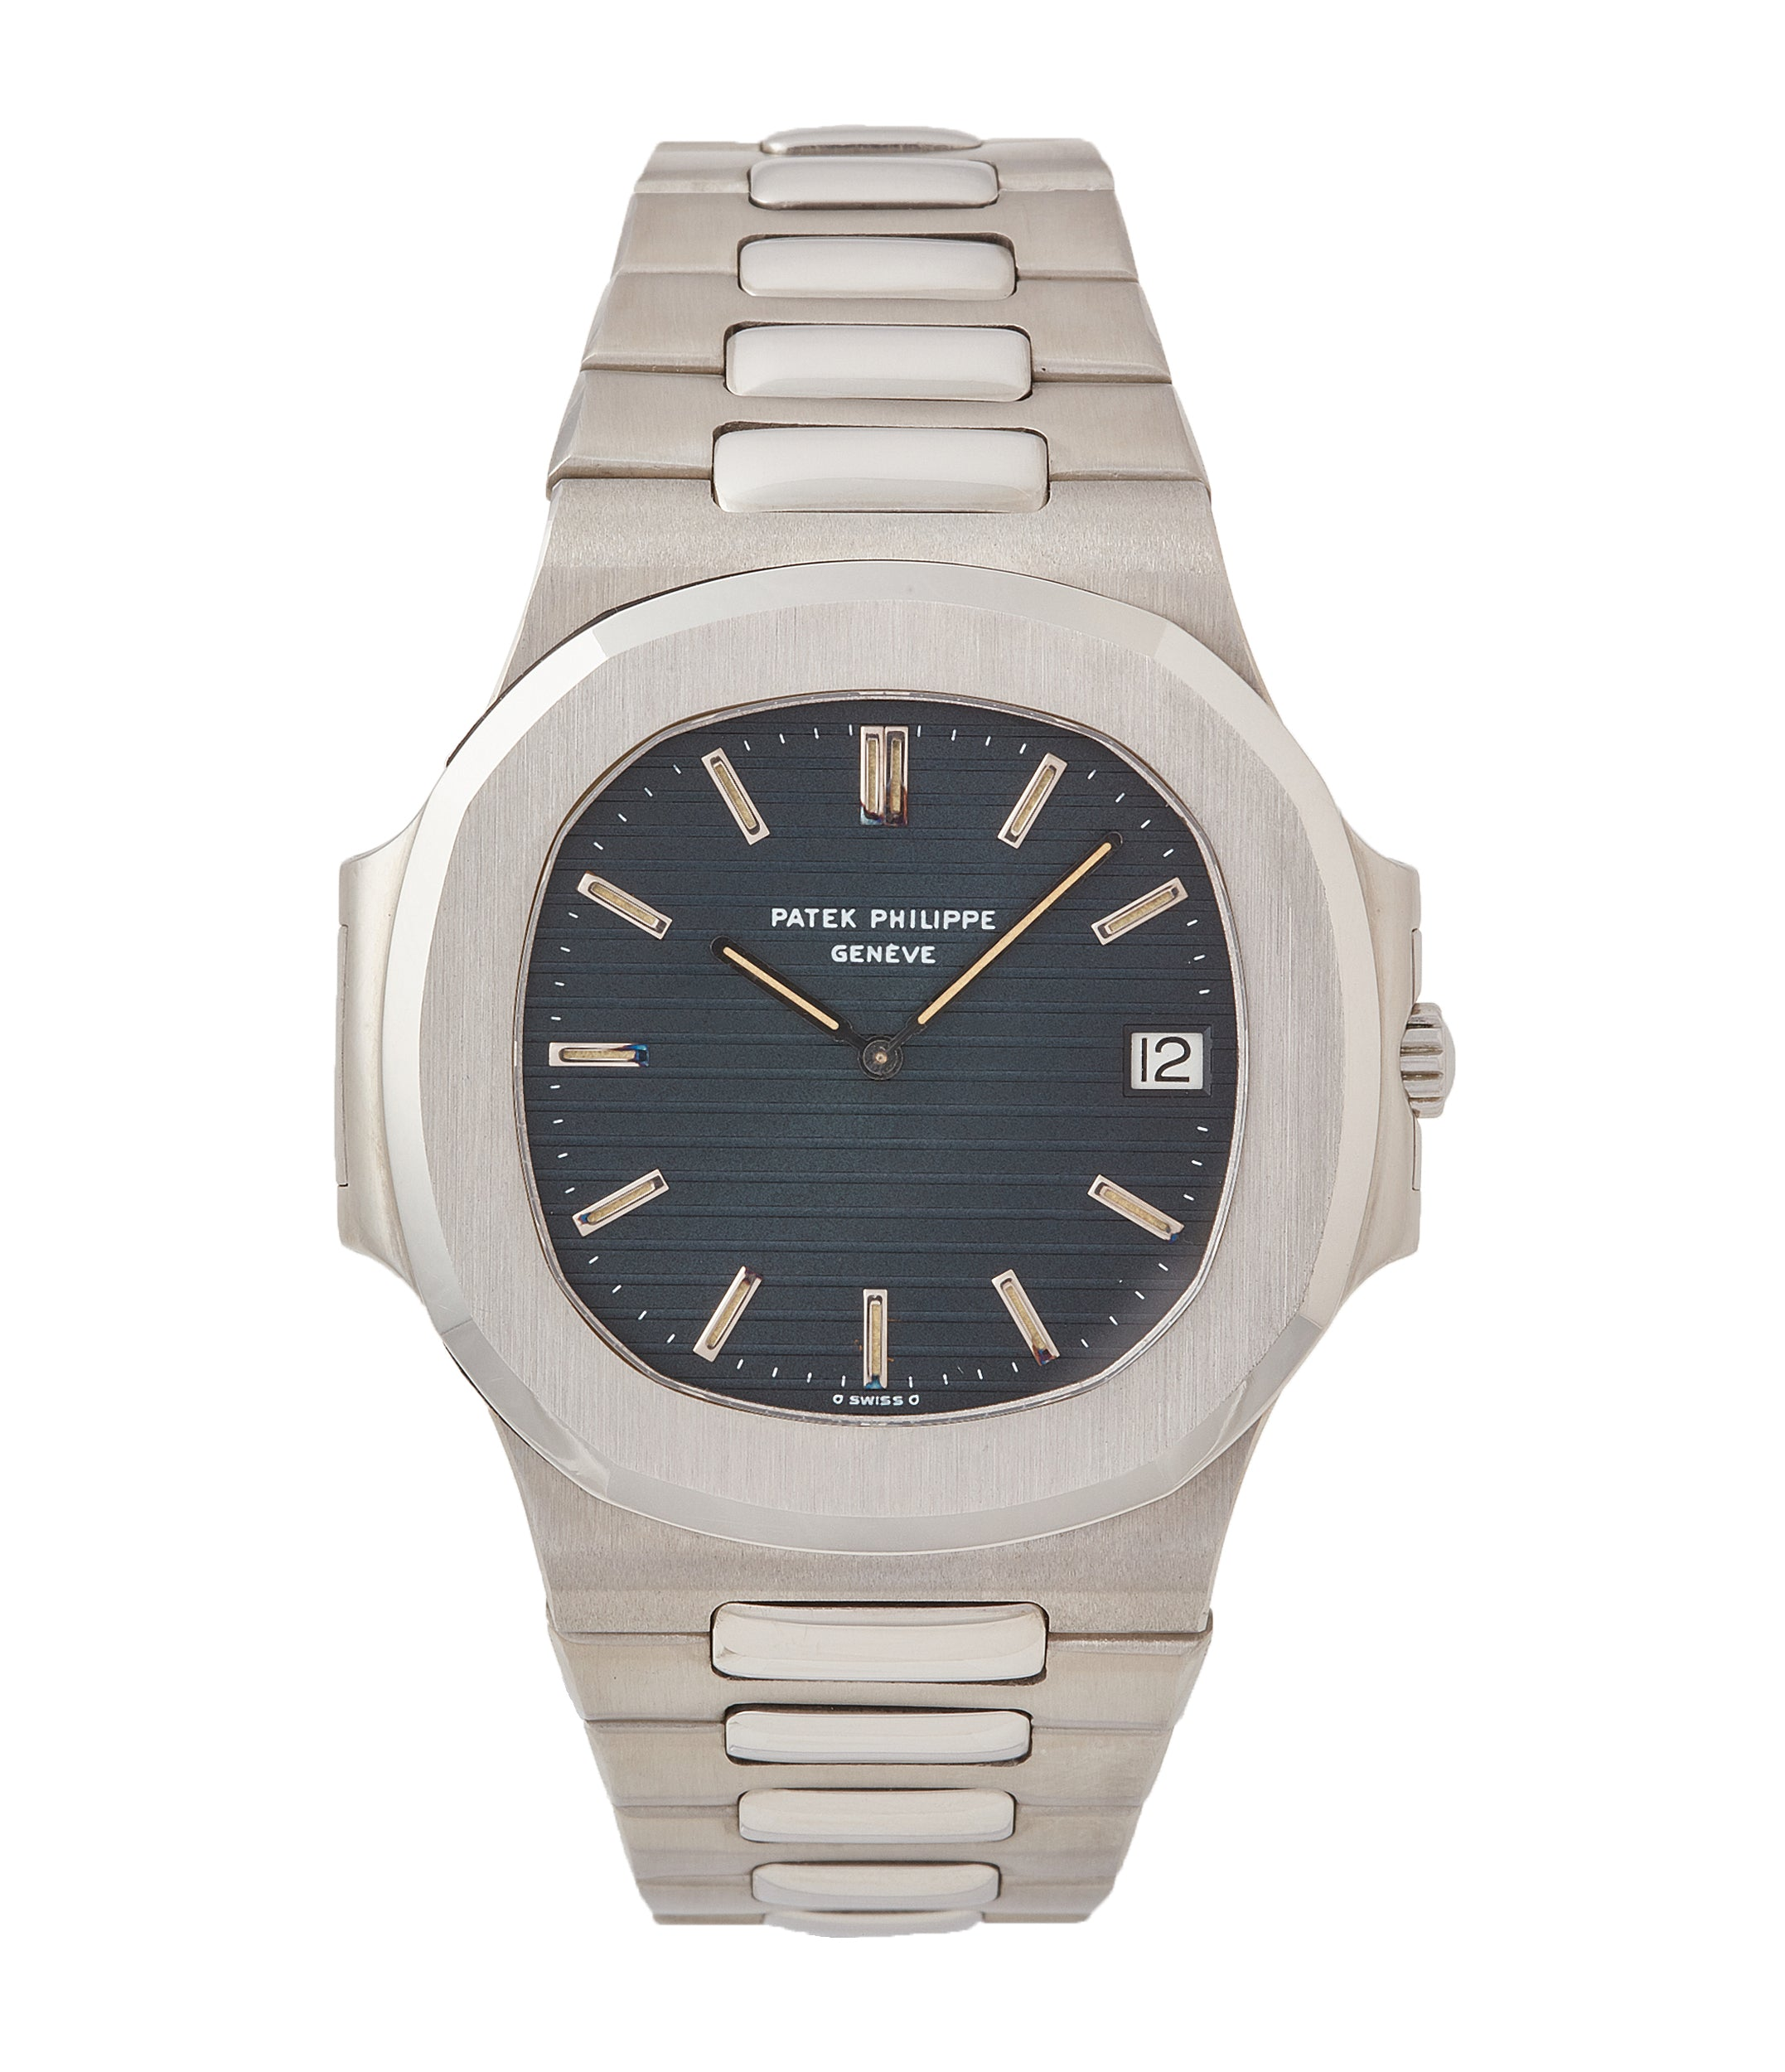 buy vintage Patek Philippe Nautilus 3700/001 full set sport watch for sale online at A Collected Man London UK specialist of rare watches